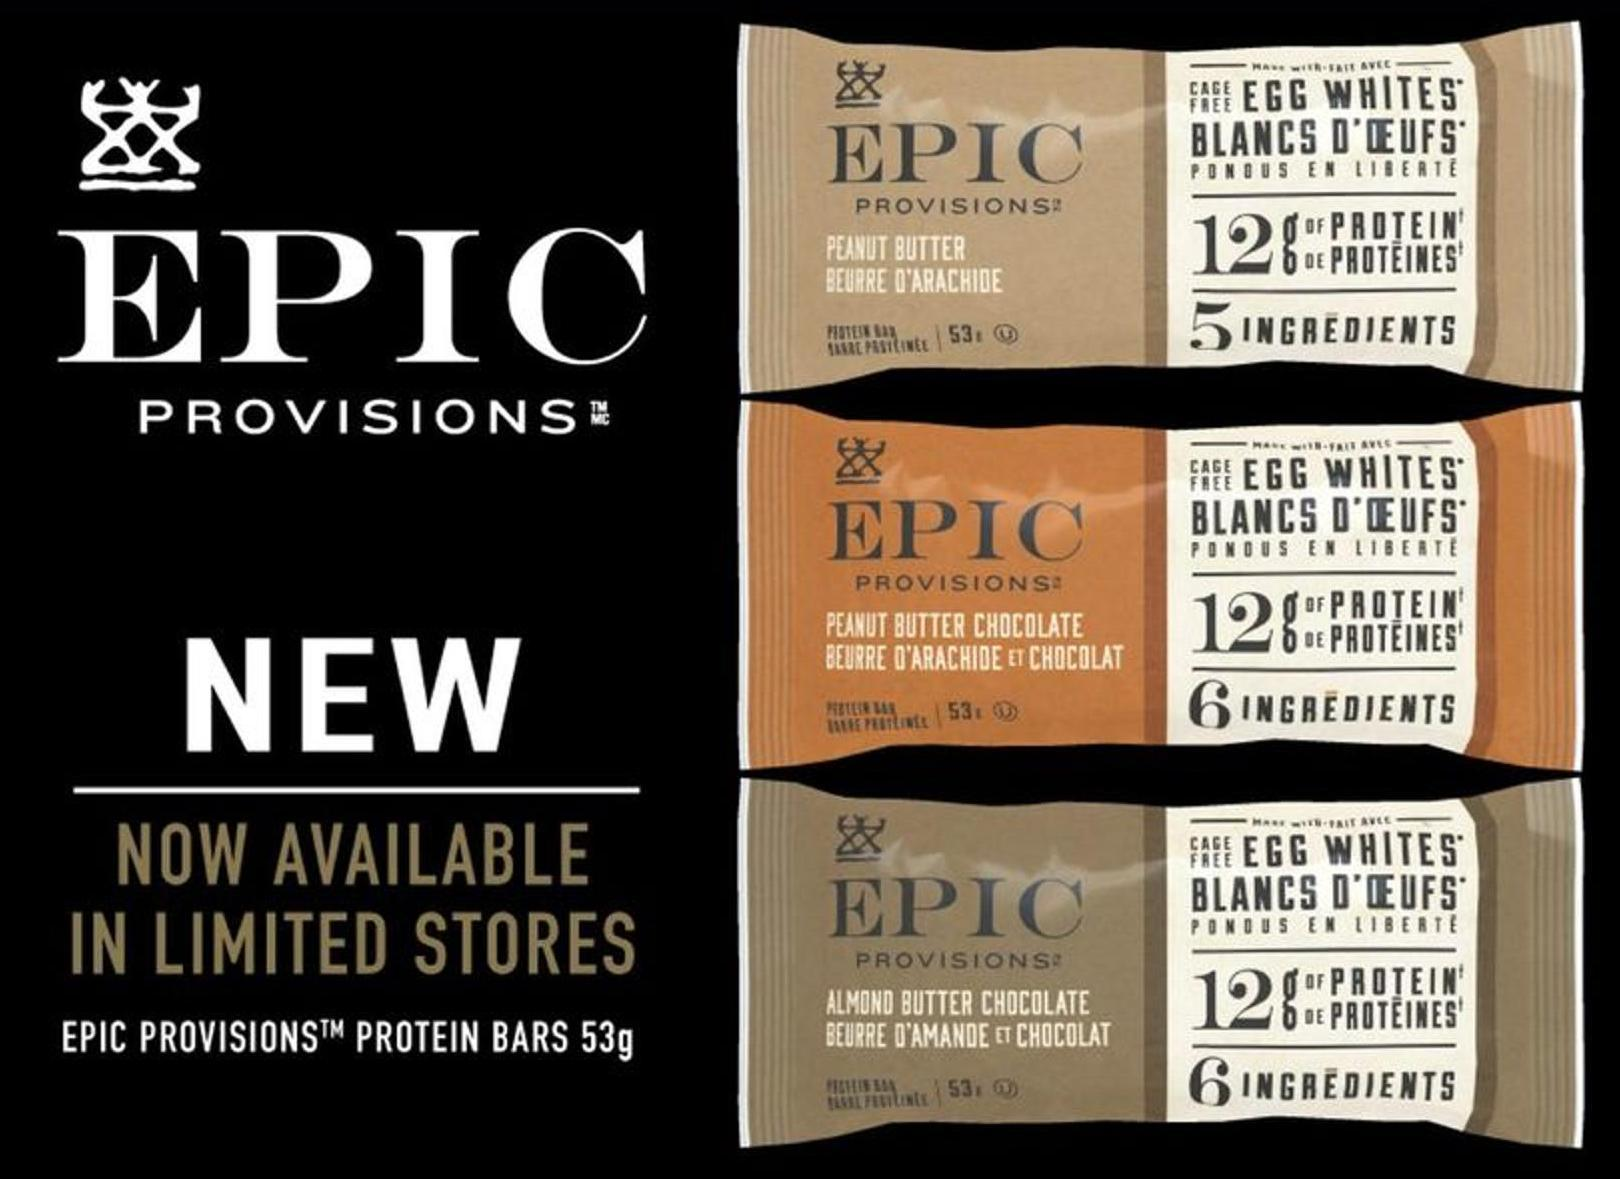 Epic Provisions Protein Bars